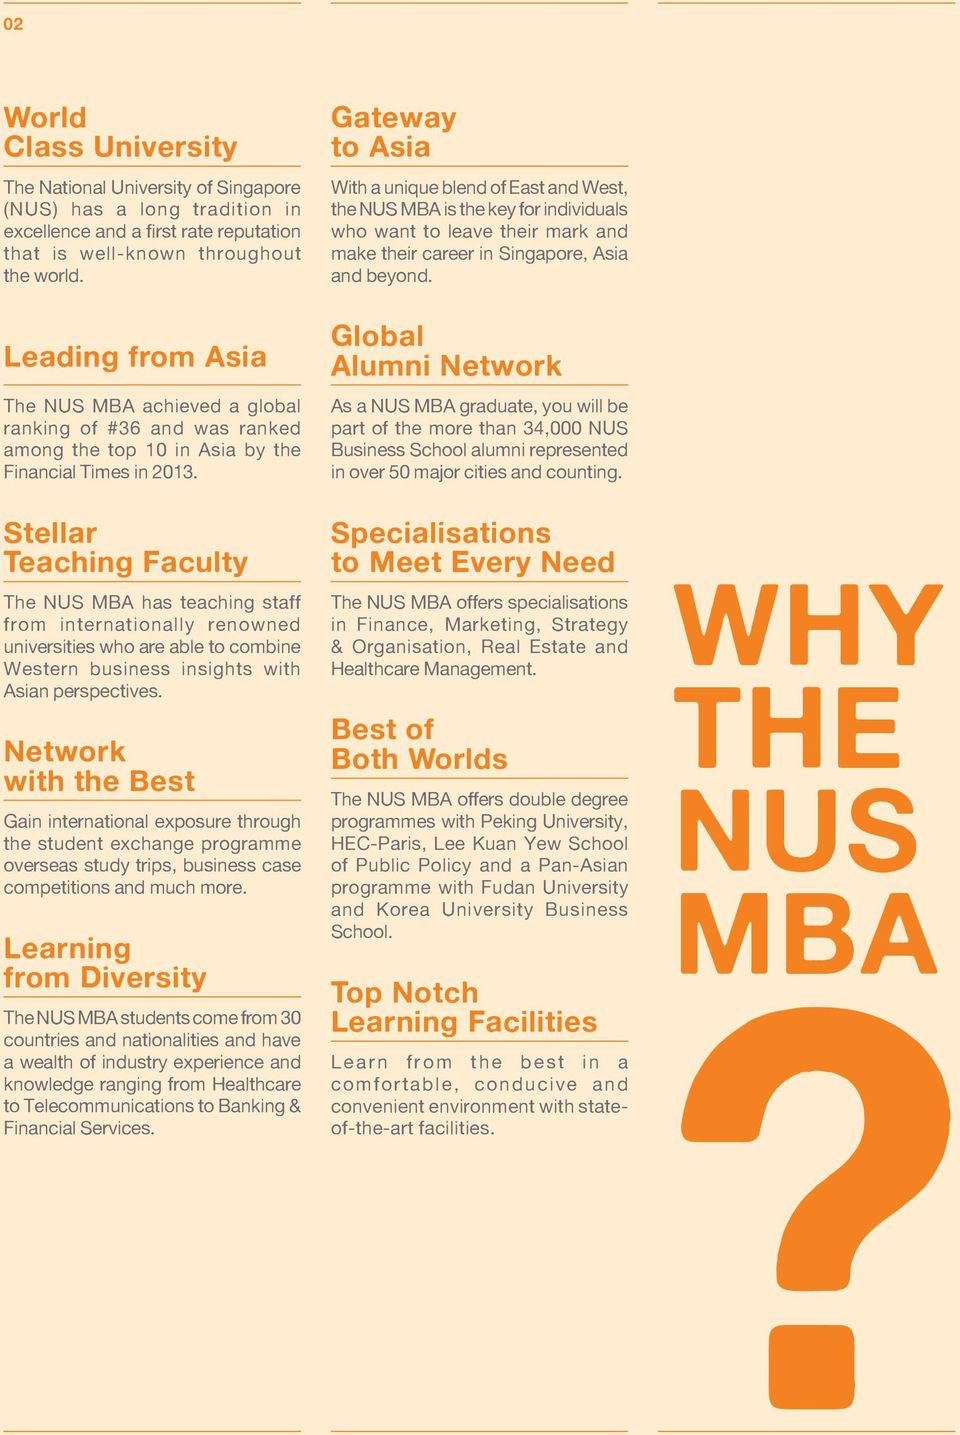 Stellar Teaching Faculty The NUS MBA has teaching staff from internationally renowned universities who are able to combine Western business insights with Asian perspectives.